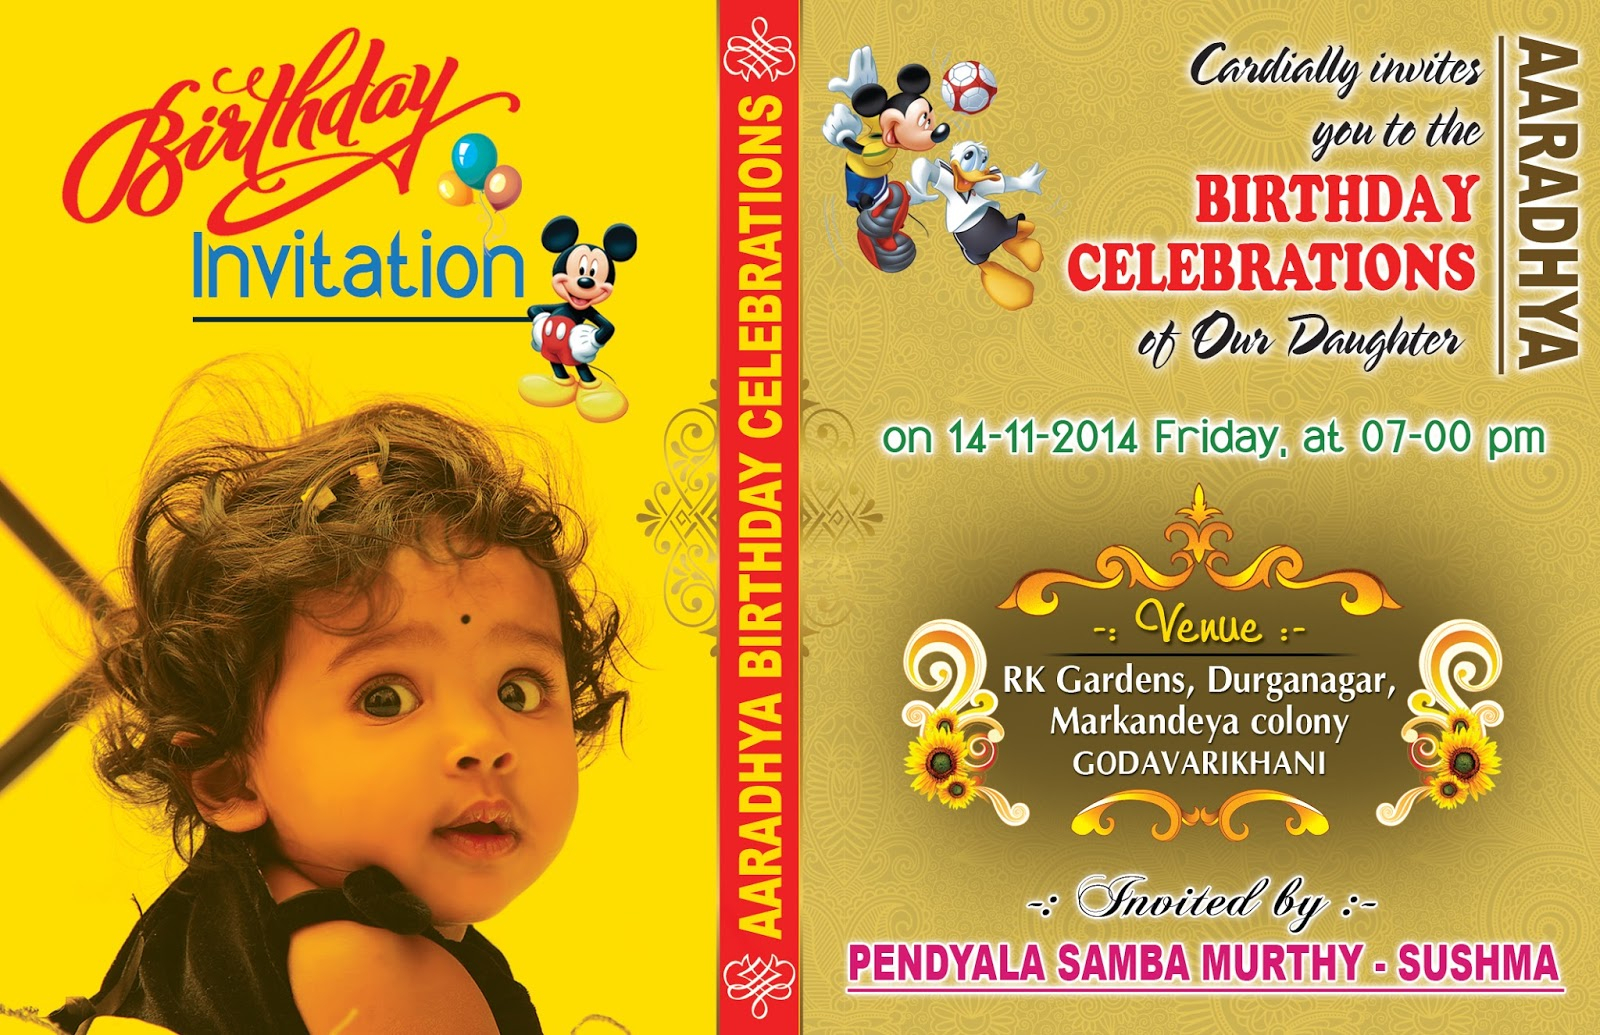 first birthday invitation cards india ; first%2520birthday%2520invitation%2520cards%2520designs%2520india%2520;%2520birthday-invitation-card-first-birthday-invitation-cards-india-online-cards-online-india